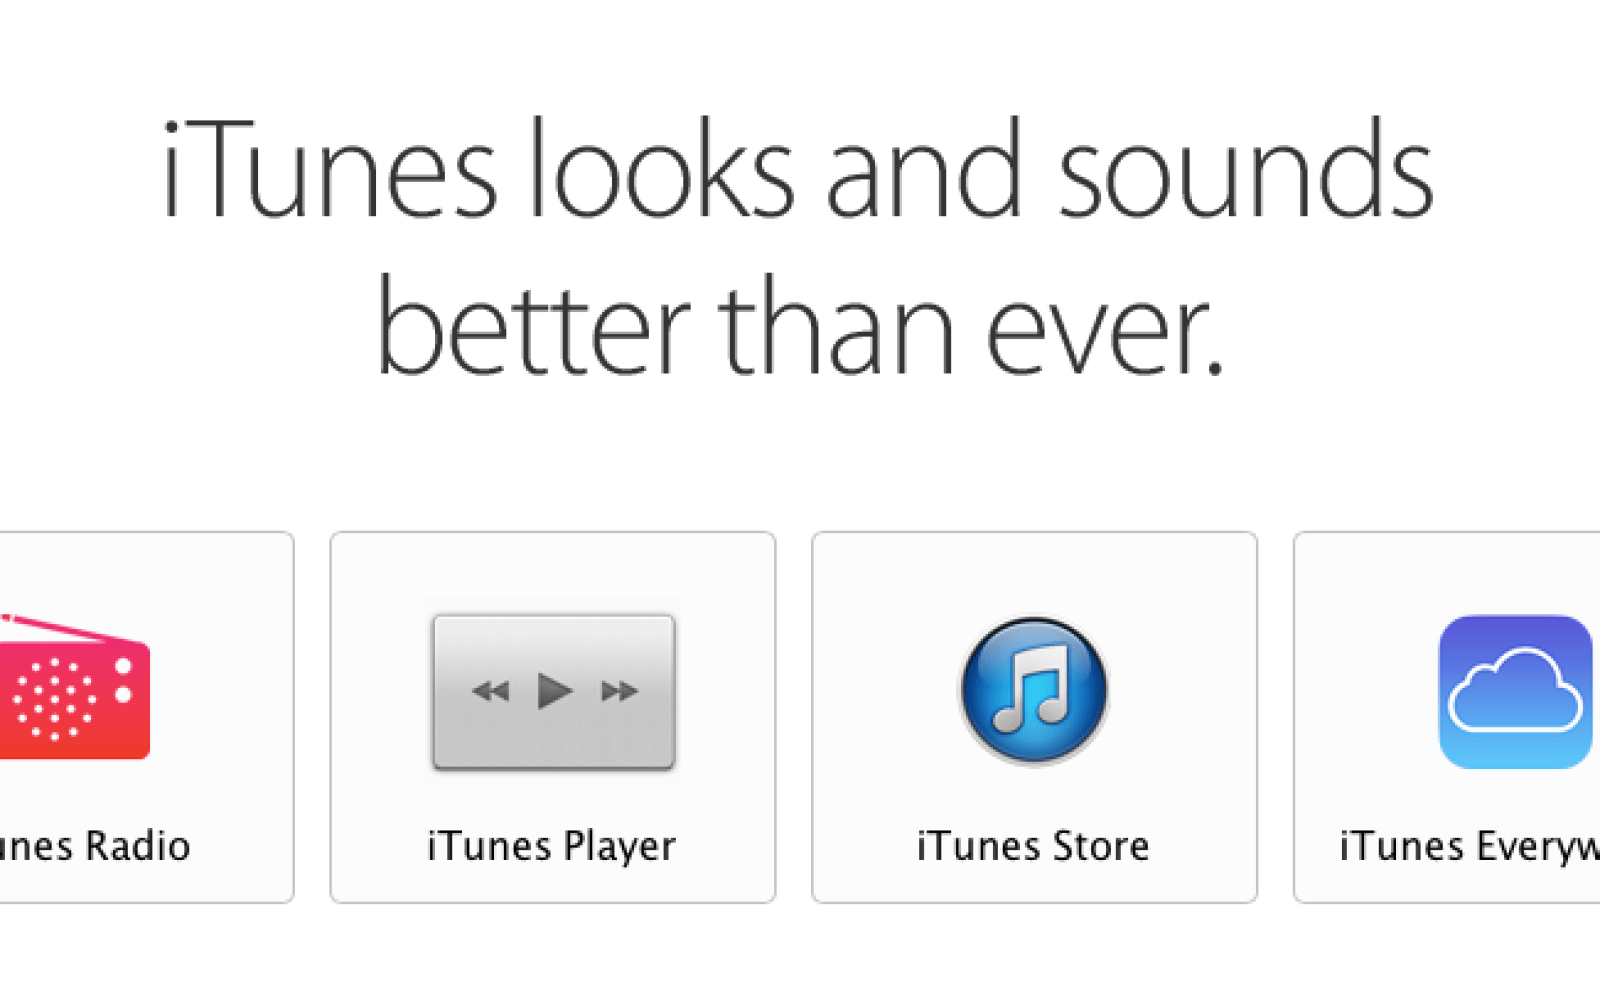 As rumors point to major iTunes renovations, Apple goes on hiring spree